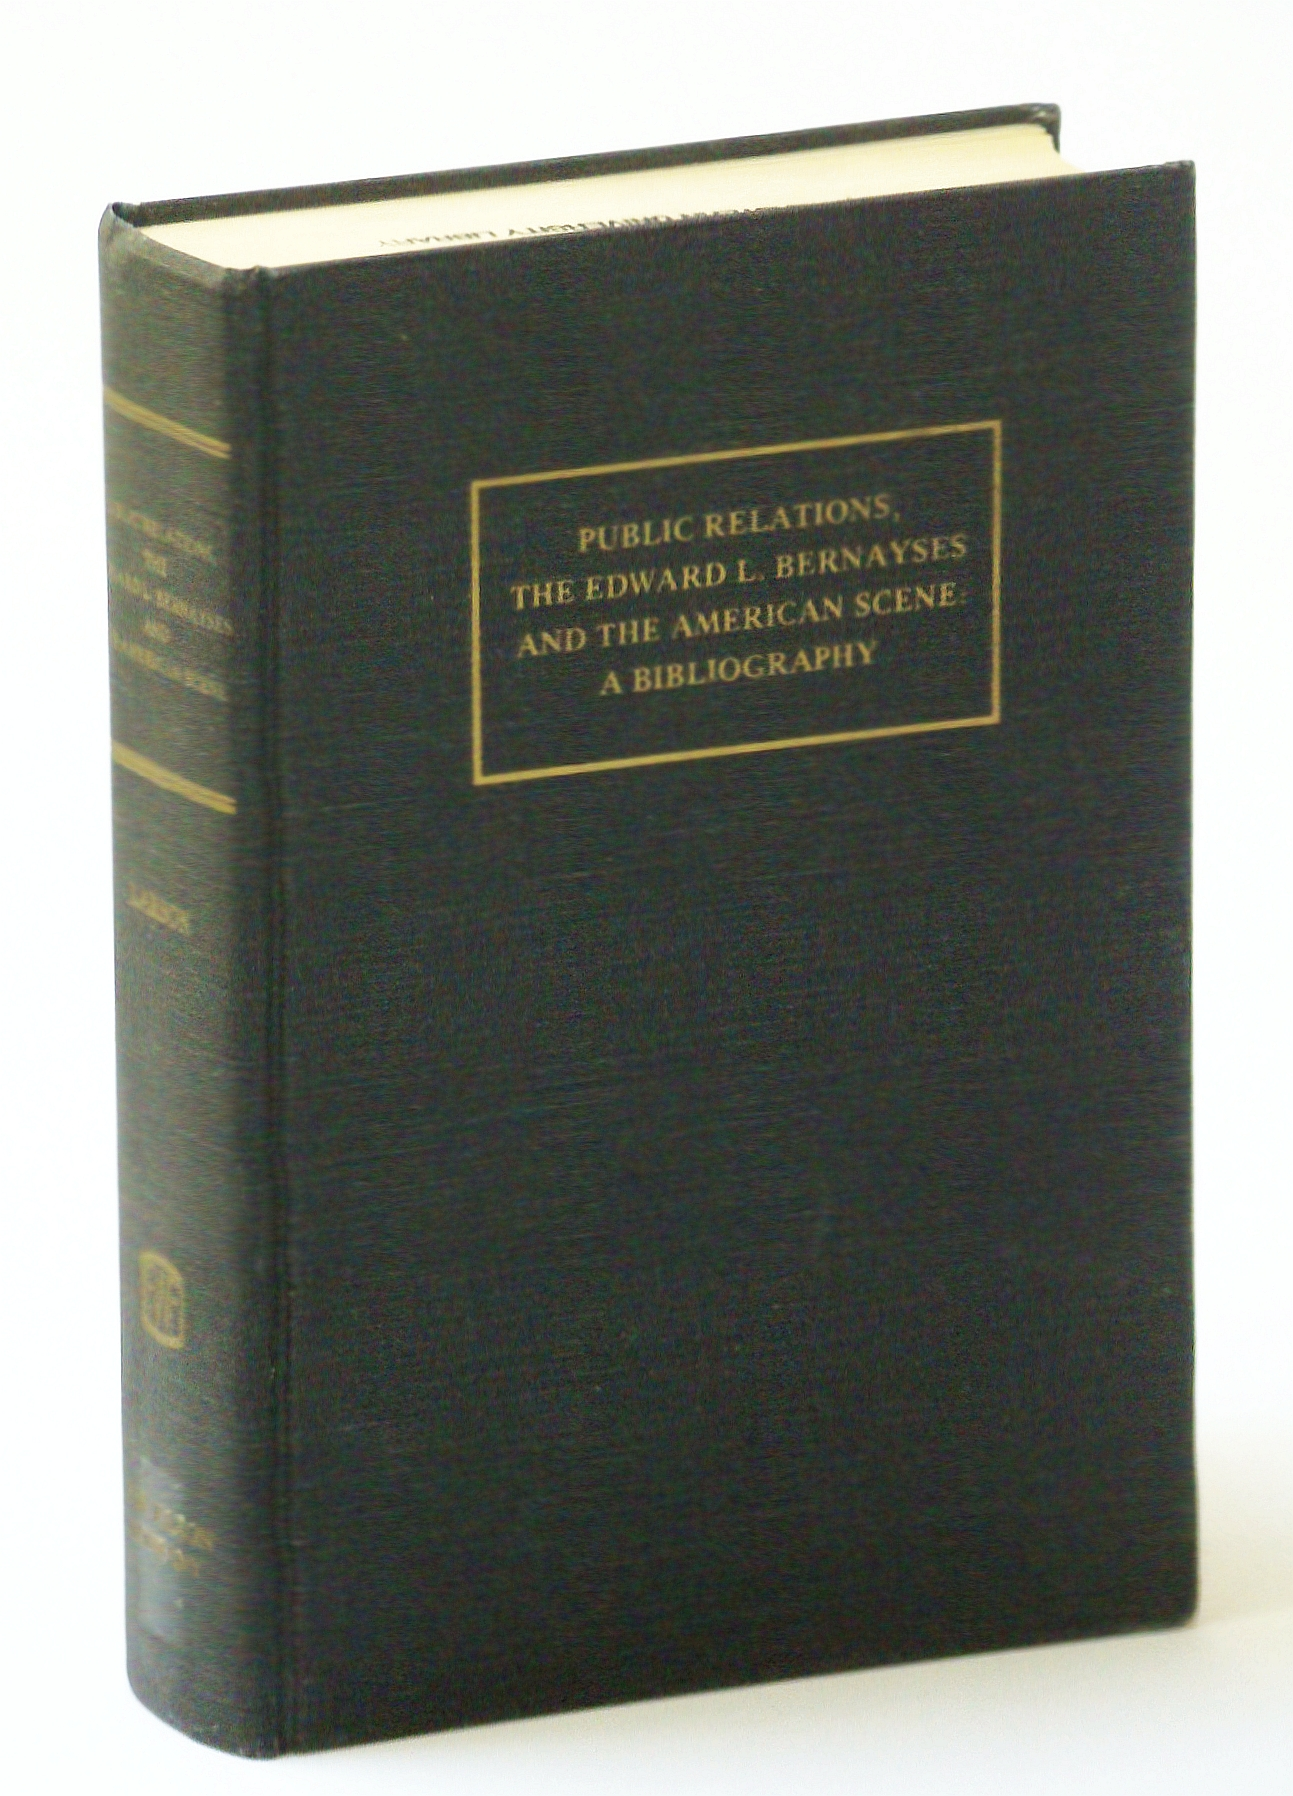 Image for Public relations, the Edward L. Bernayses and the American scene: A bibliography (Useful reference series)